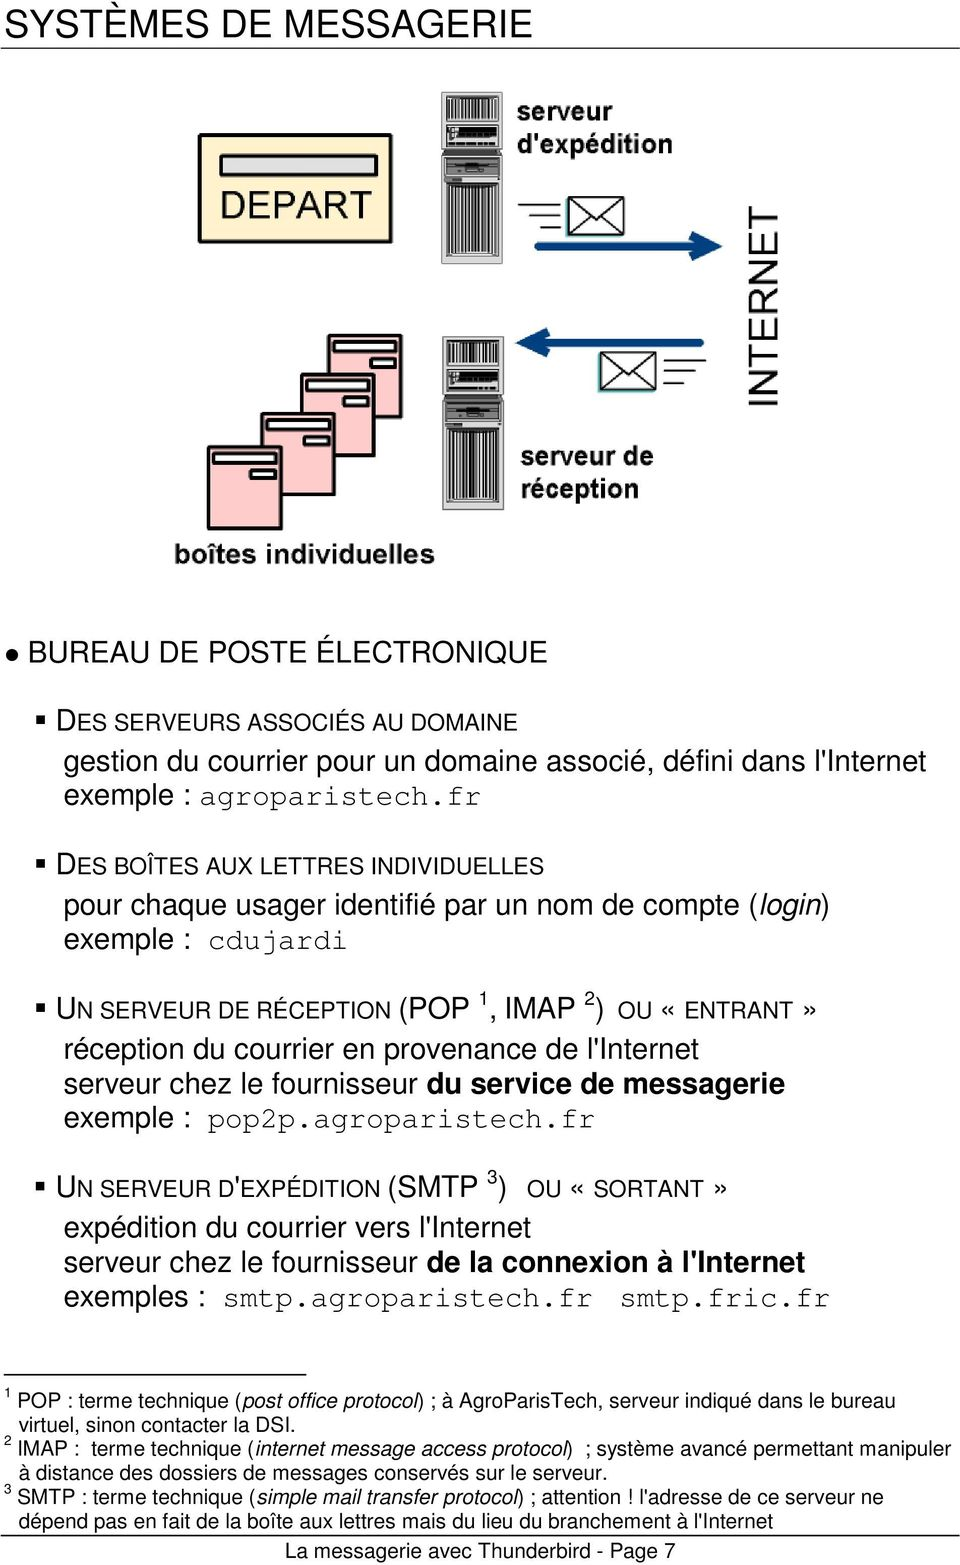 provenance de l'internet serveur chez le fournisseur du service de messagerie exemple : pop2p.agroparistech.